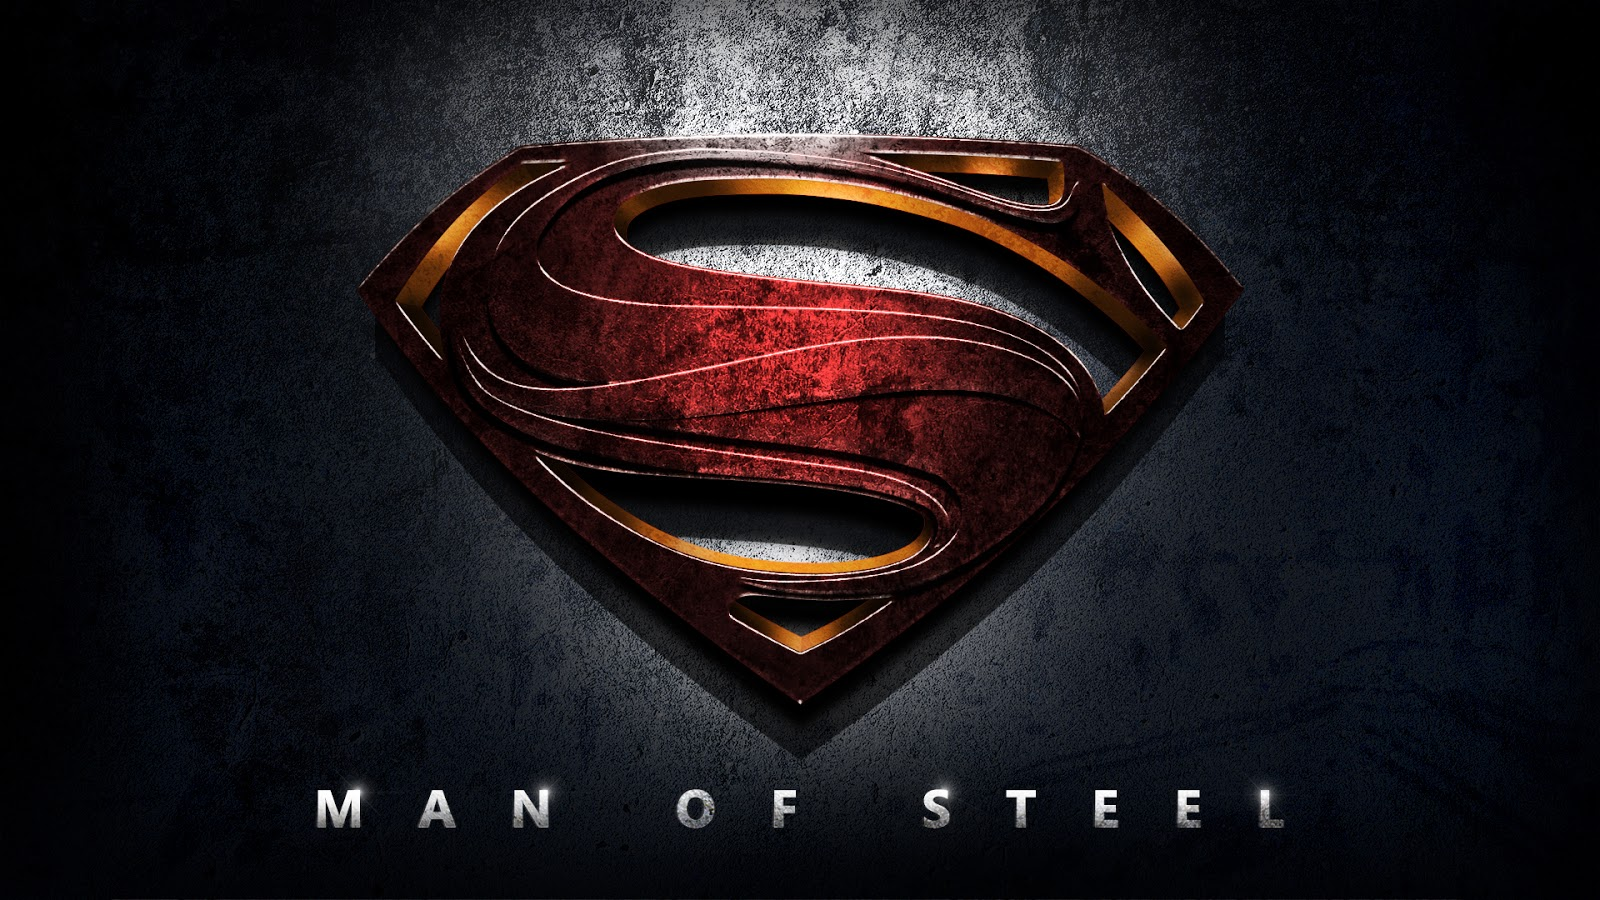 High Quality Images Super Man The Man of Steel Wallpaper 1600x900